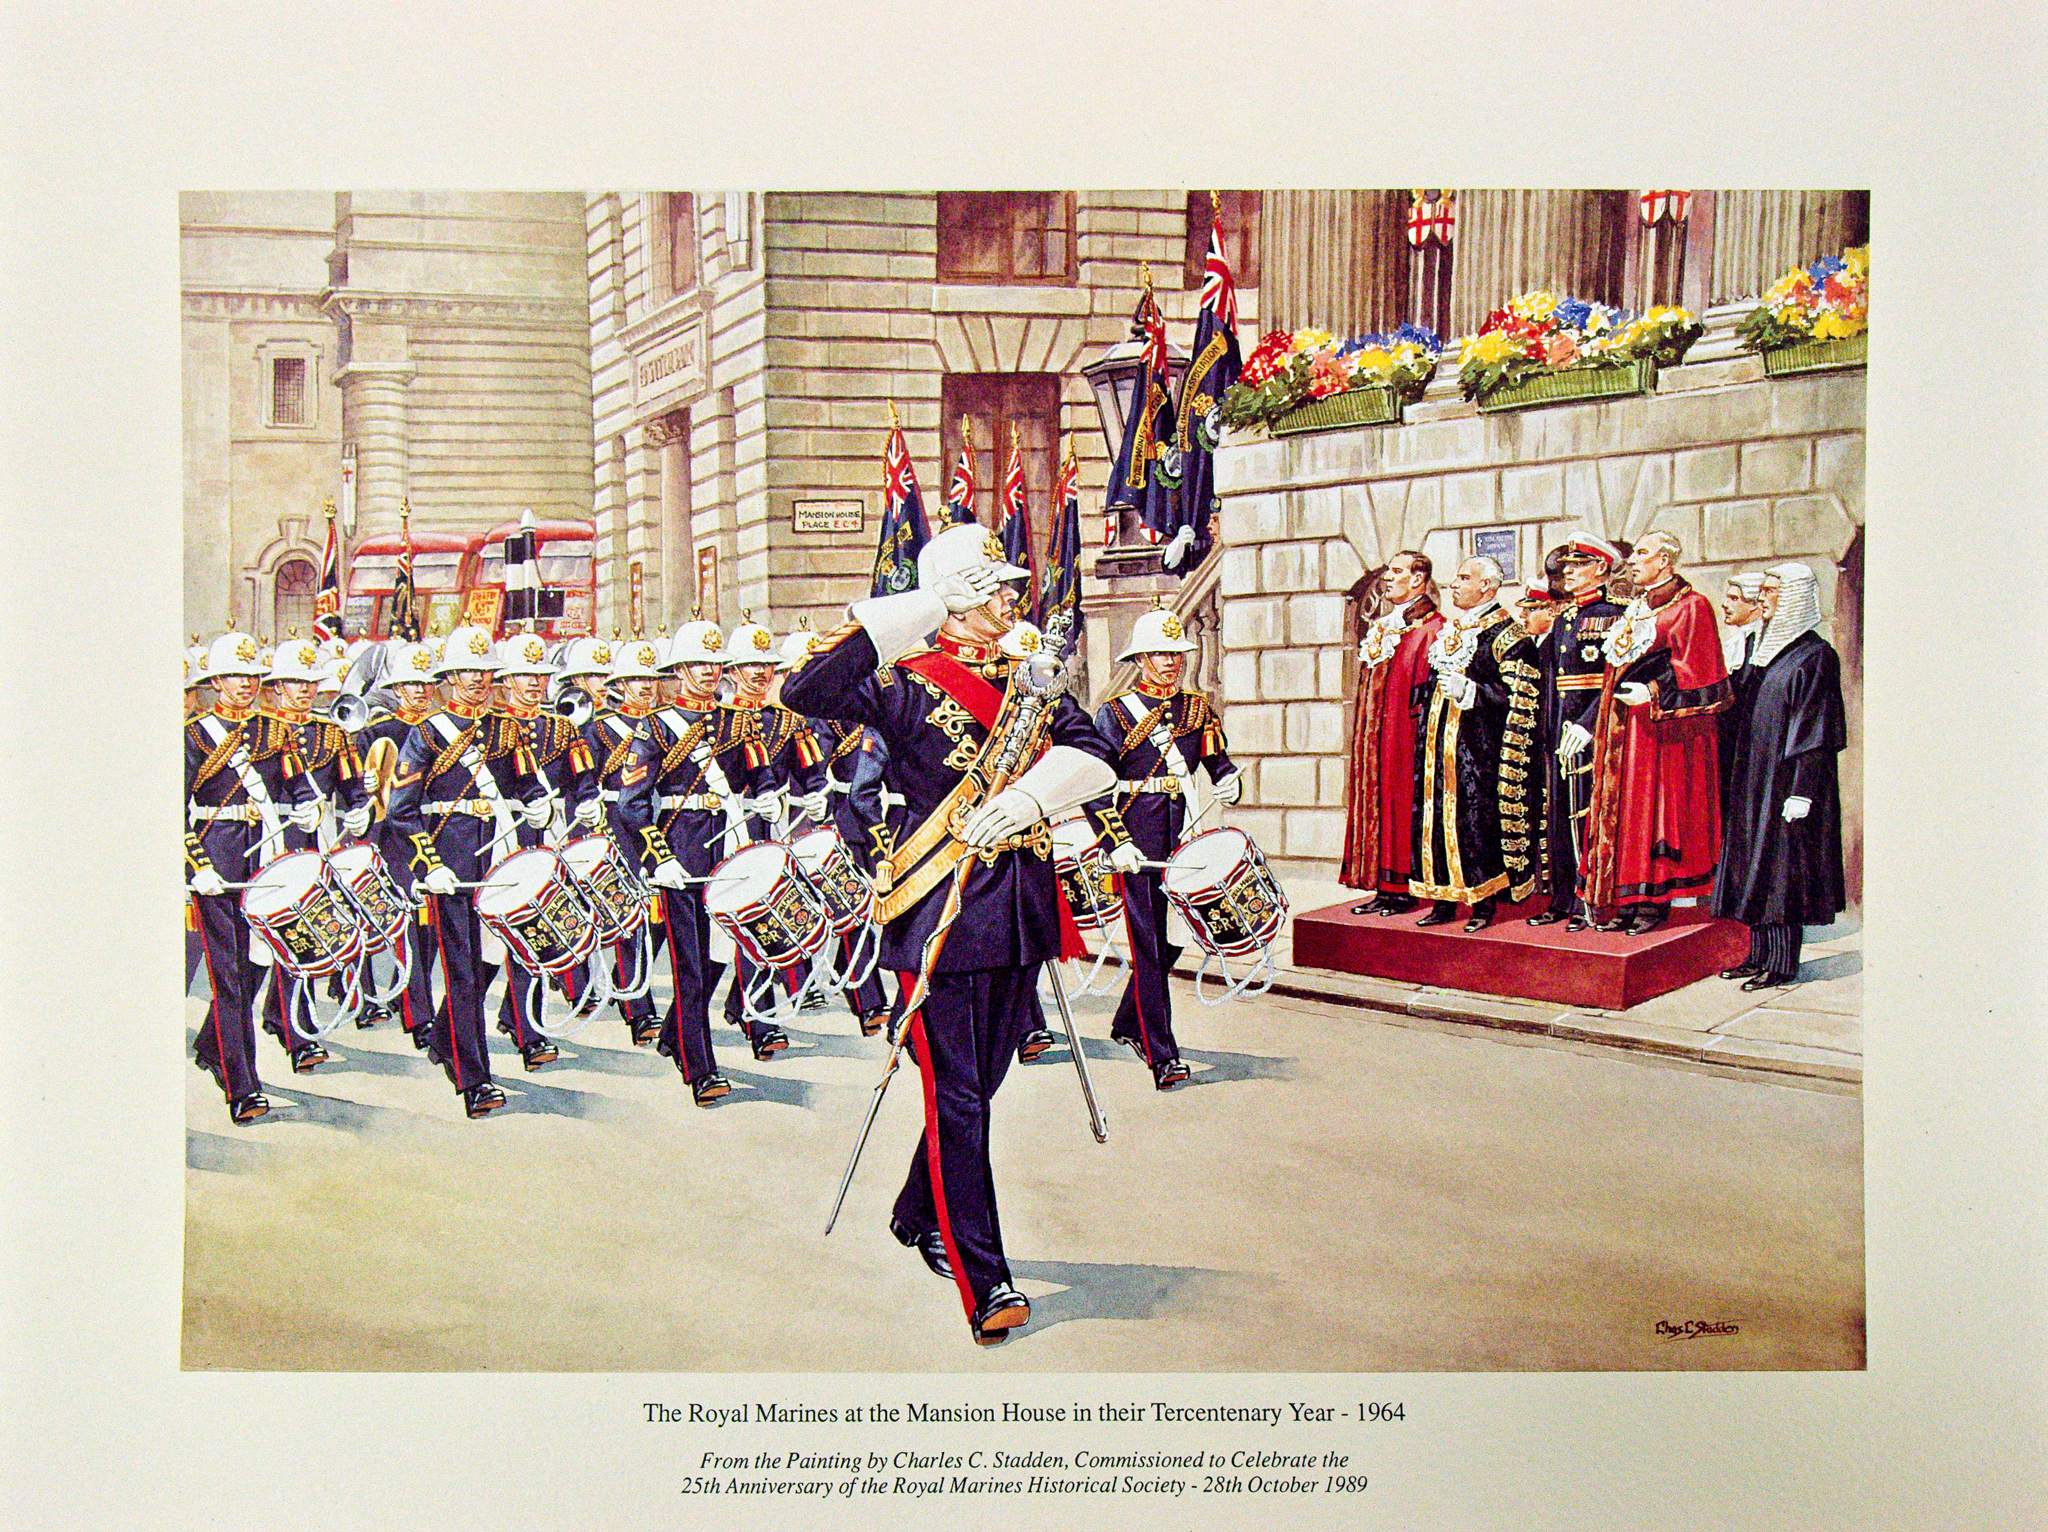 Print of painting by Charles Staden, commissioned to celebrate the 25th Anniversary of the Royal Marines Historical Society - 28th October 1989